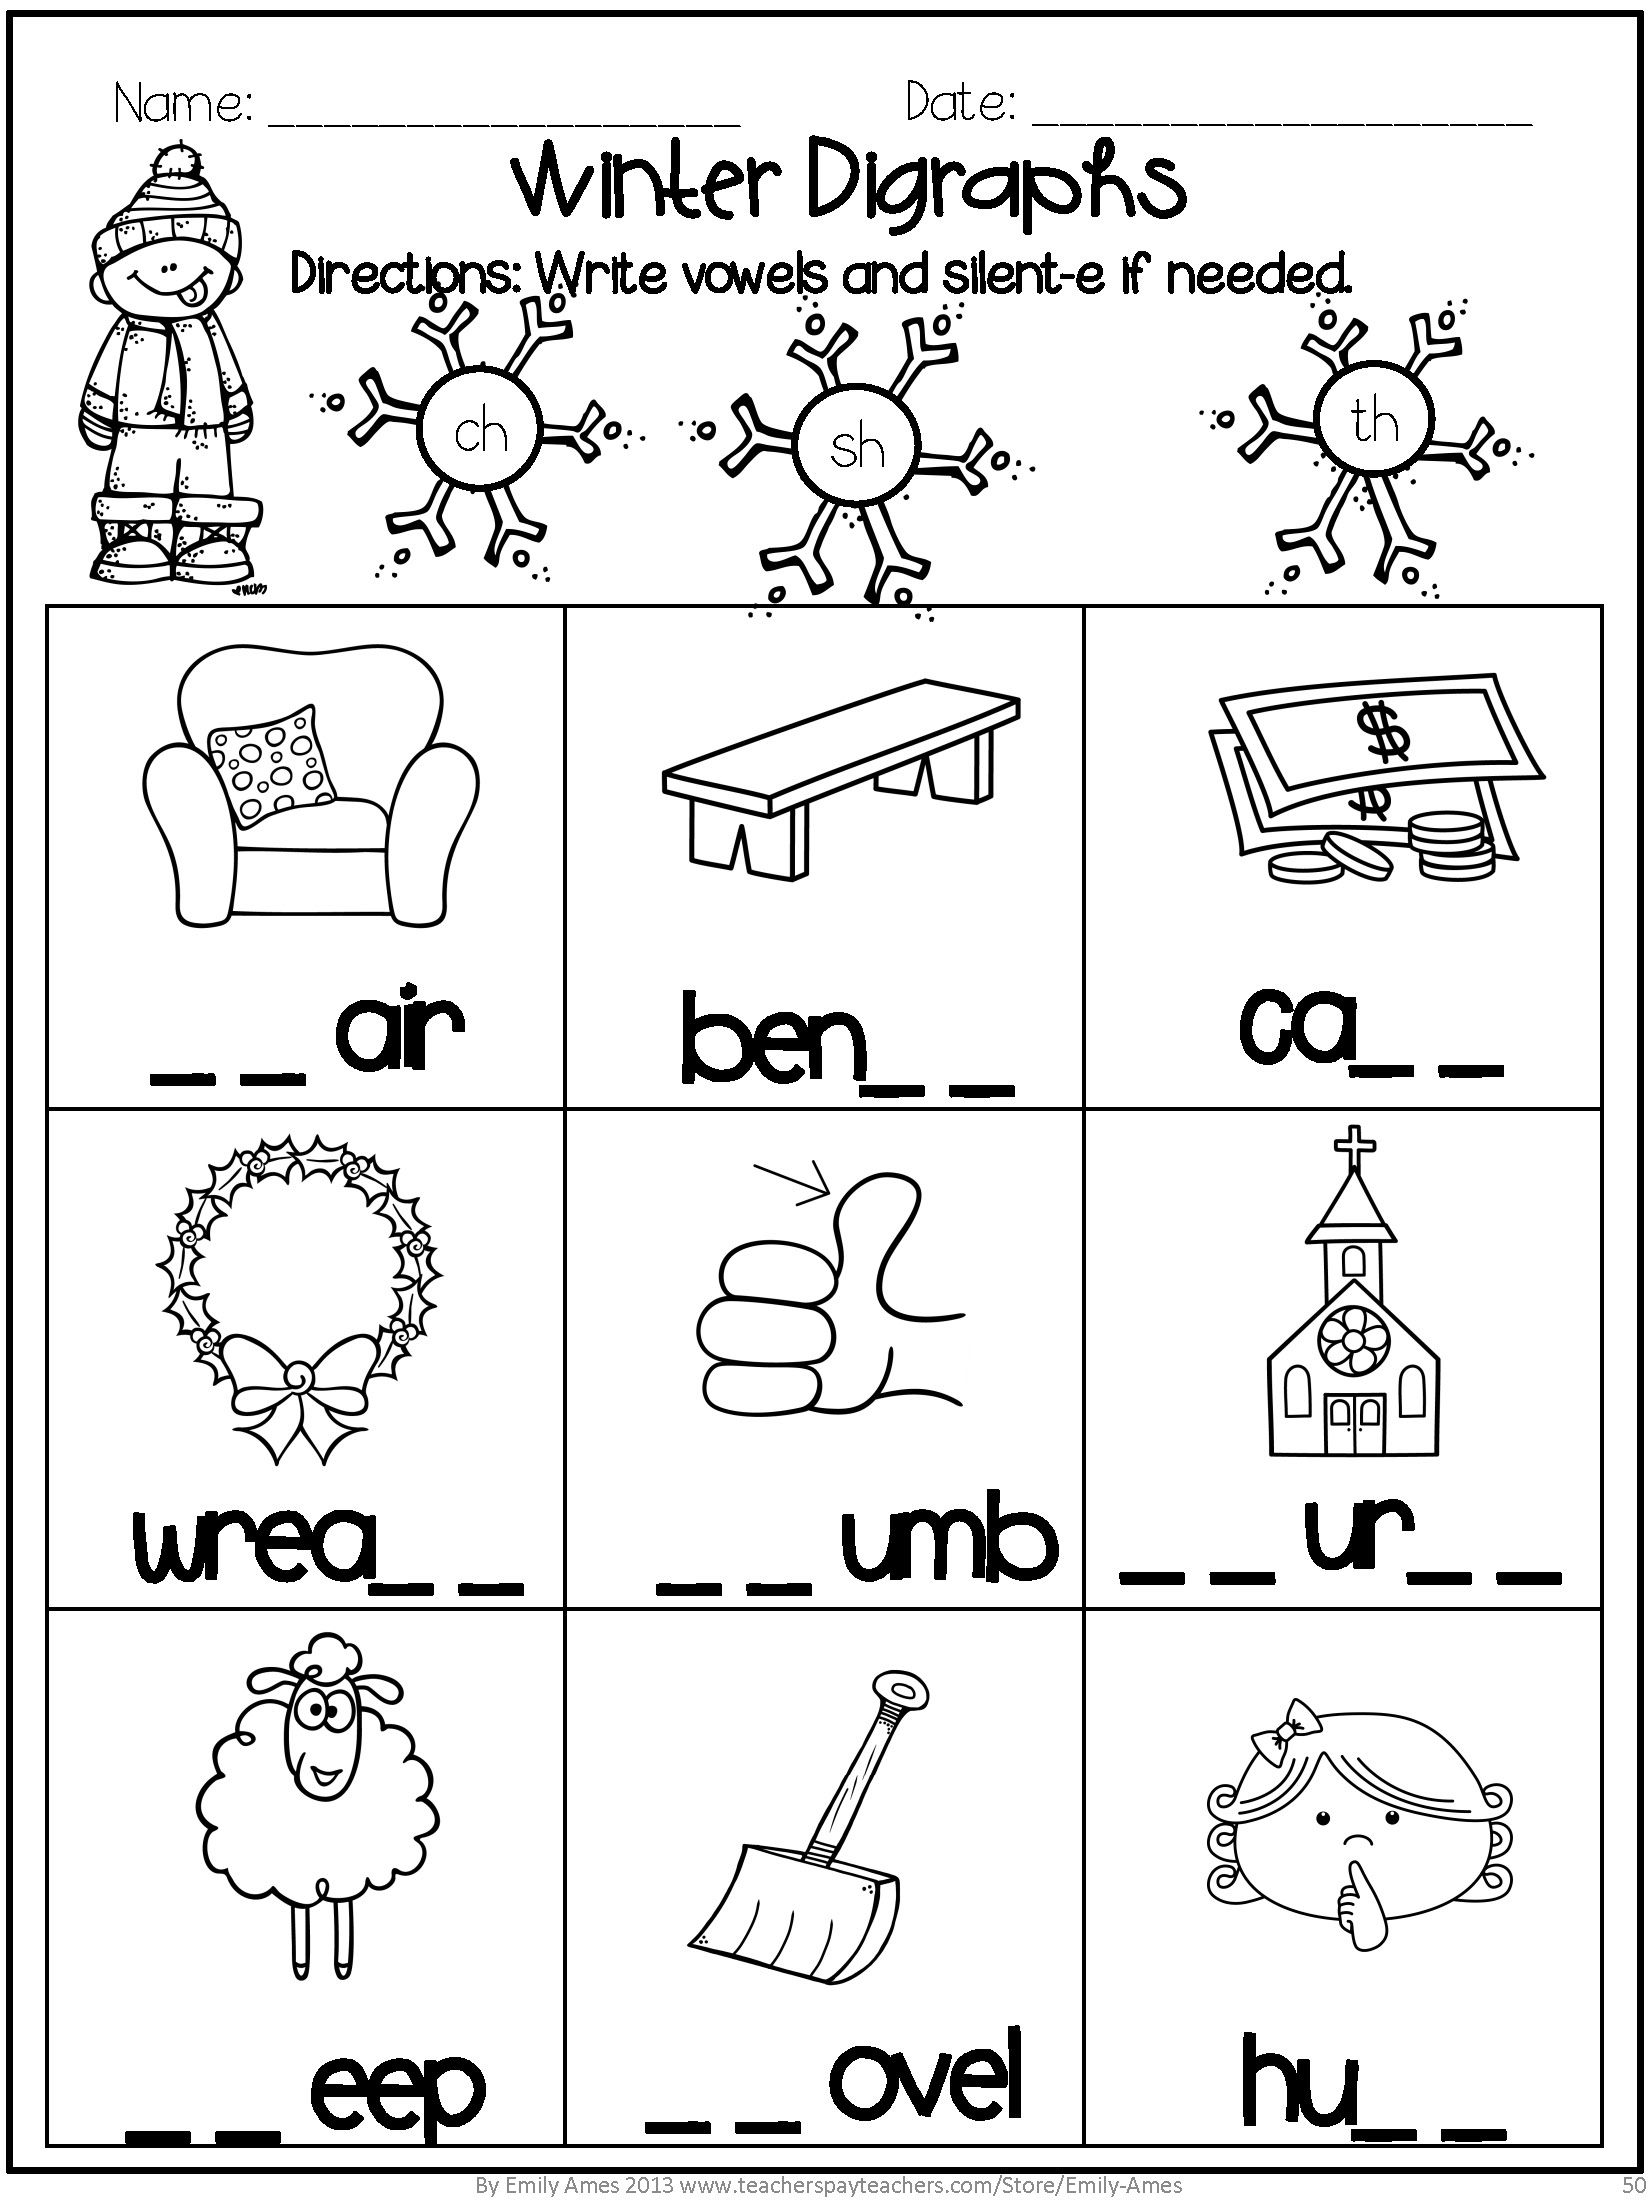 Winter Math And Word Fun Digraphs Addition Subtraction Blends Short Vowels Long Vowels Silent E Ski Teaching Phonics Kindergarten Worksheets Winter Math